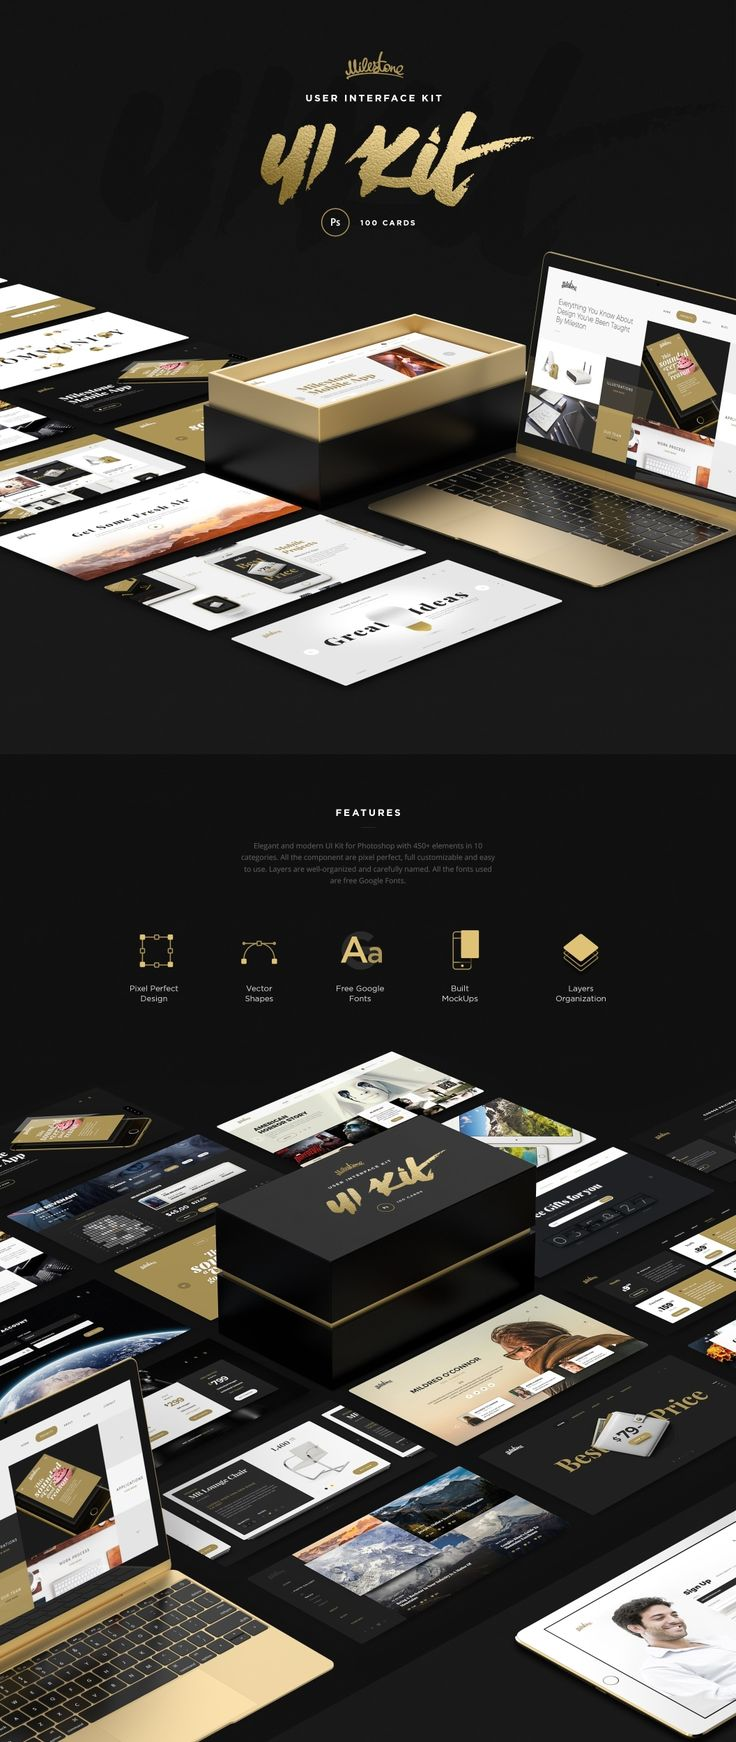 Elegant and modern UI Kit for Photoshop with 450+ elements in 10 categories. All the component are fully customizable and easy to use. Layers are well-organized and carefully named. All the fonts used are free Google Fonts. Built MockUps All our mockups are created with smart objects in high resolution. Also you can choose any color from the palette and apply it to mockup.Playfair Display